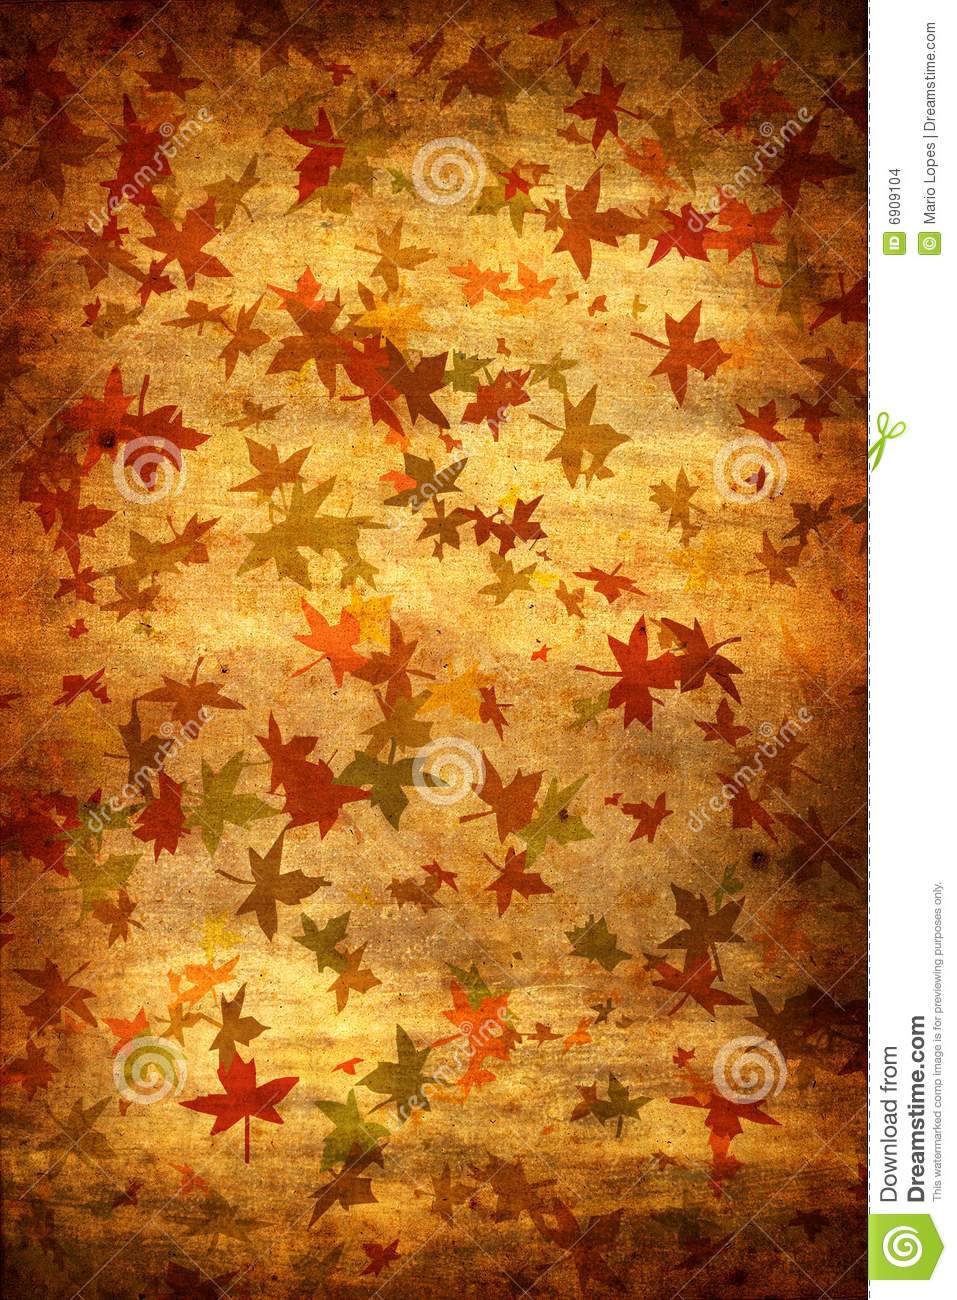 Hd Wallpaper Texture Fall Harvest Mapple Leafs Autumn Grunge Background Stock Images Image